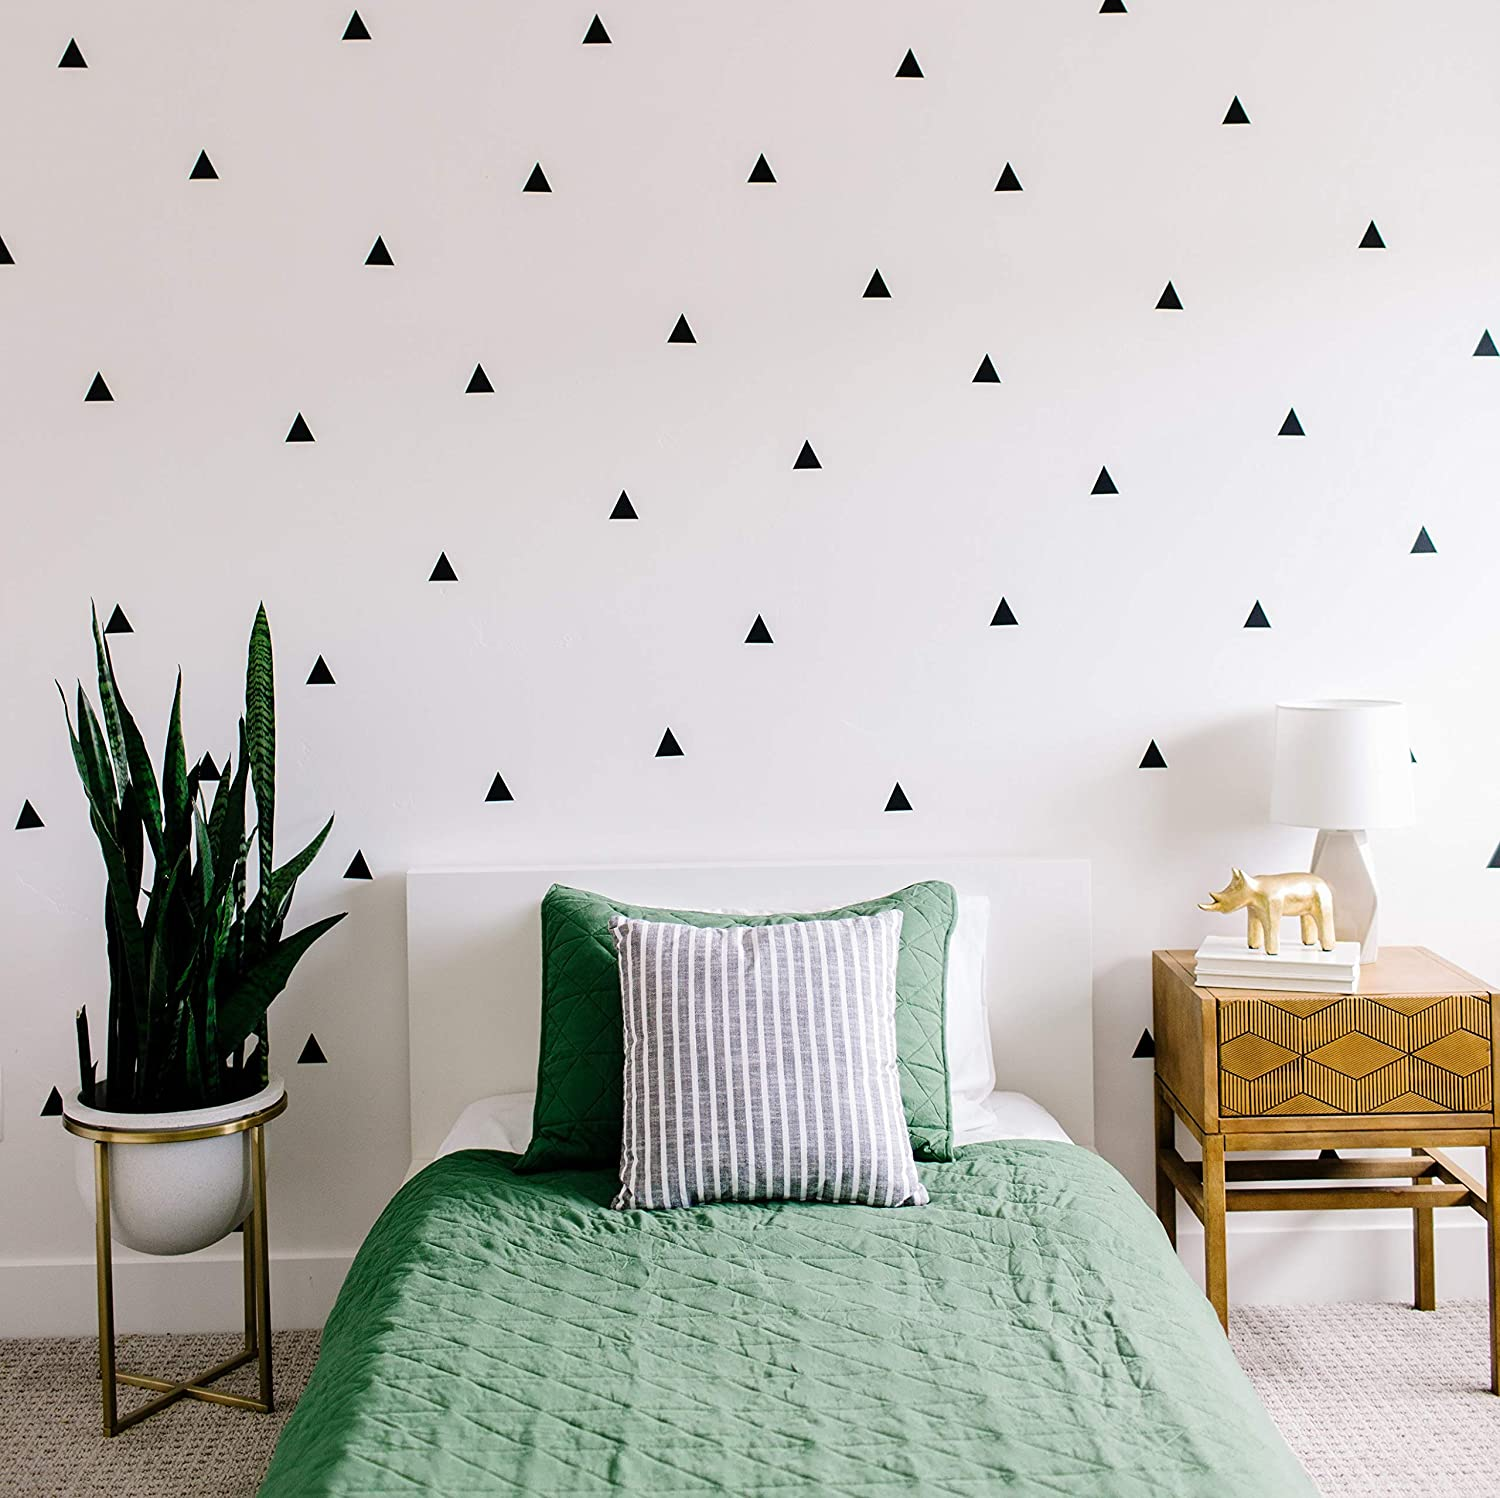 "Modern Maxwell Wall Art Decals for Boys Girls Nursery, Bedroom, Living Room ""Arizona"" Black Triangle Room Sticker 80 Pieces"